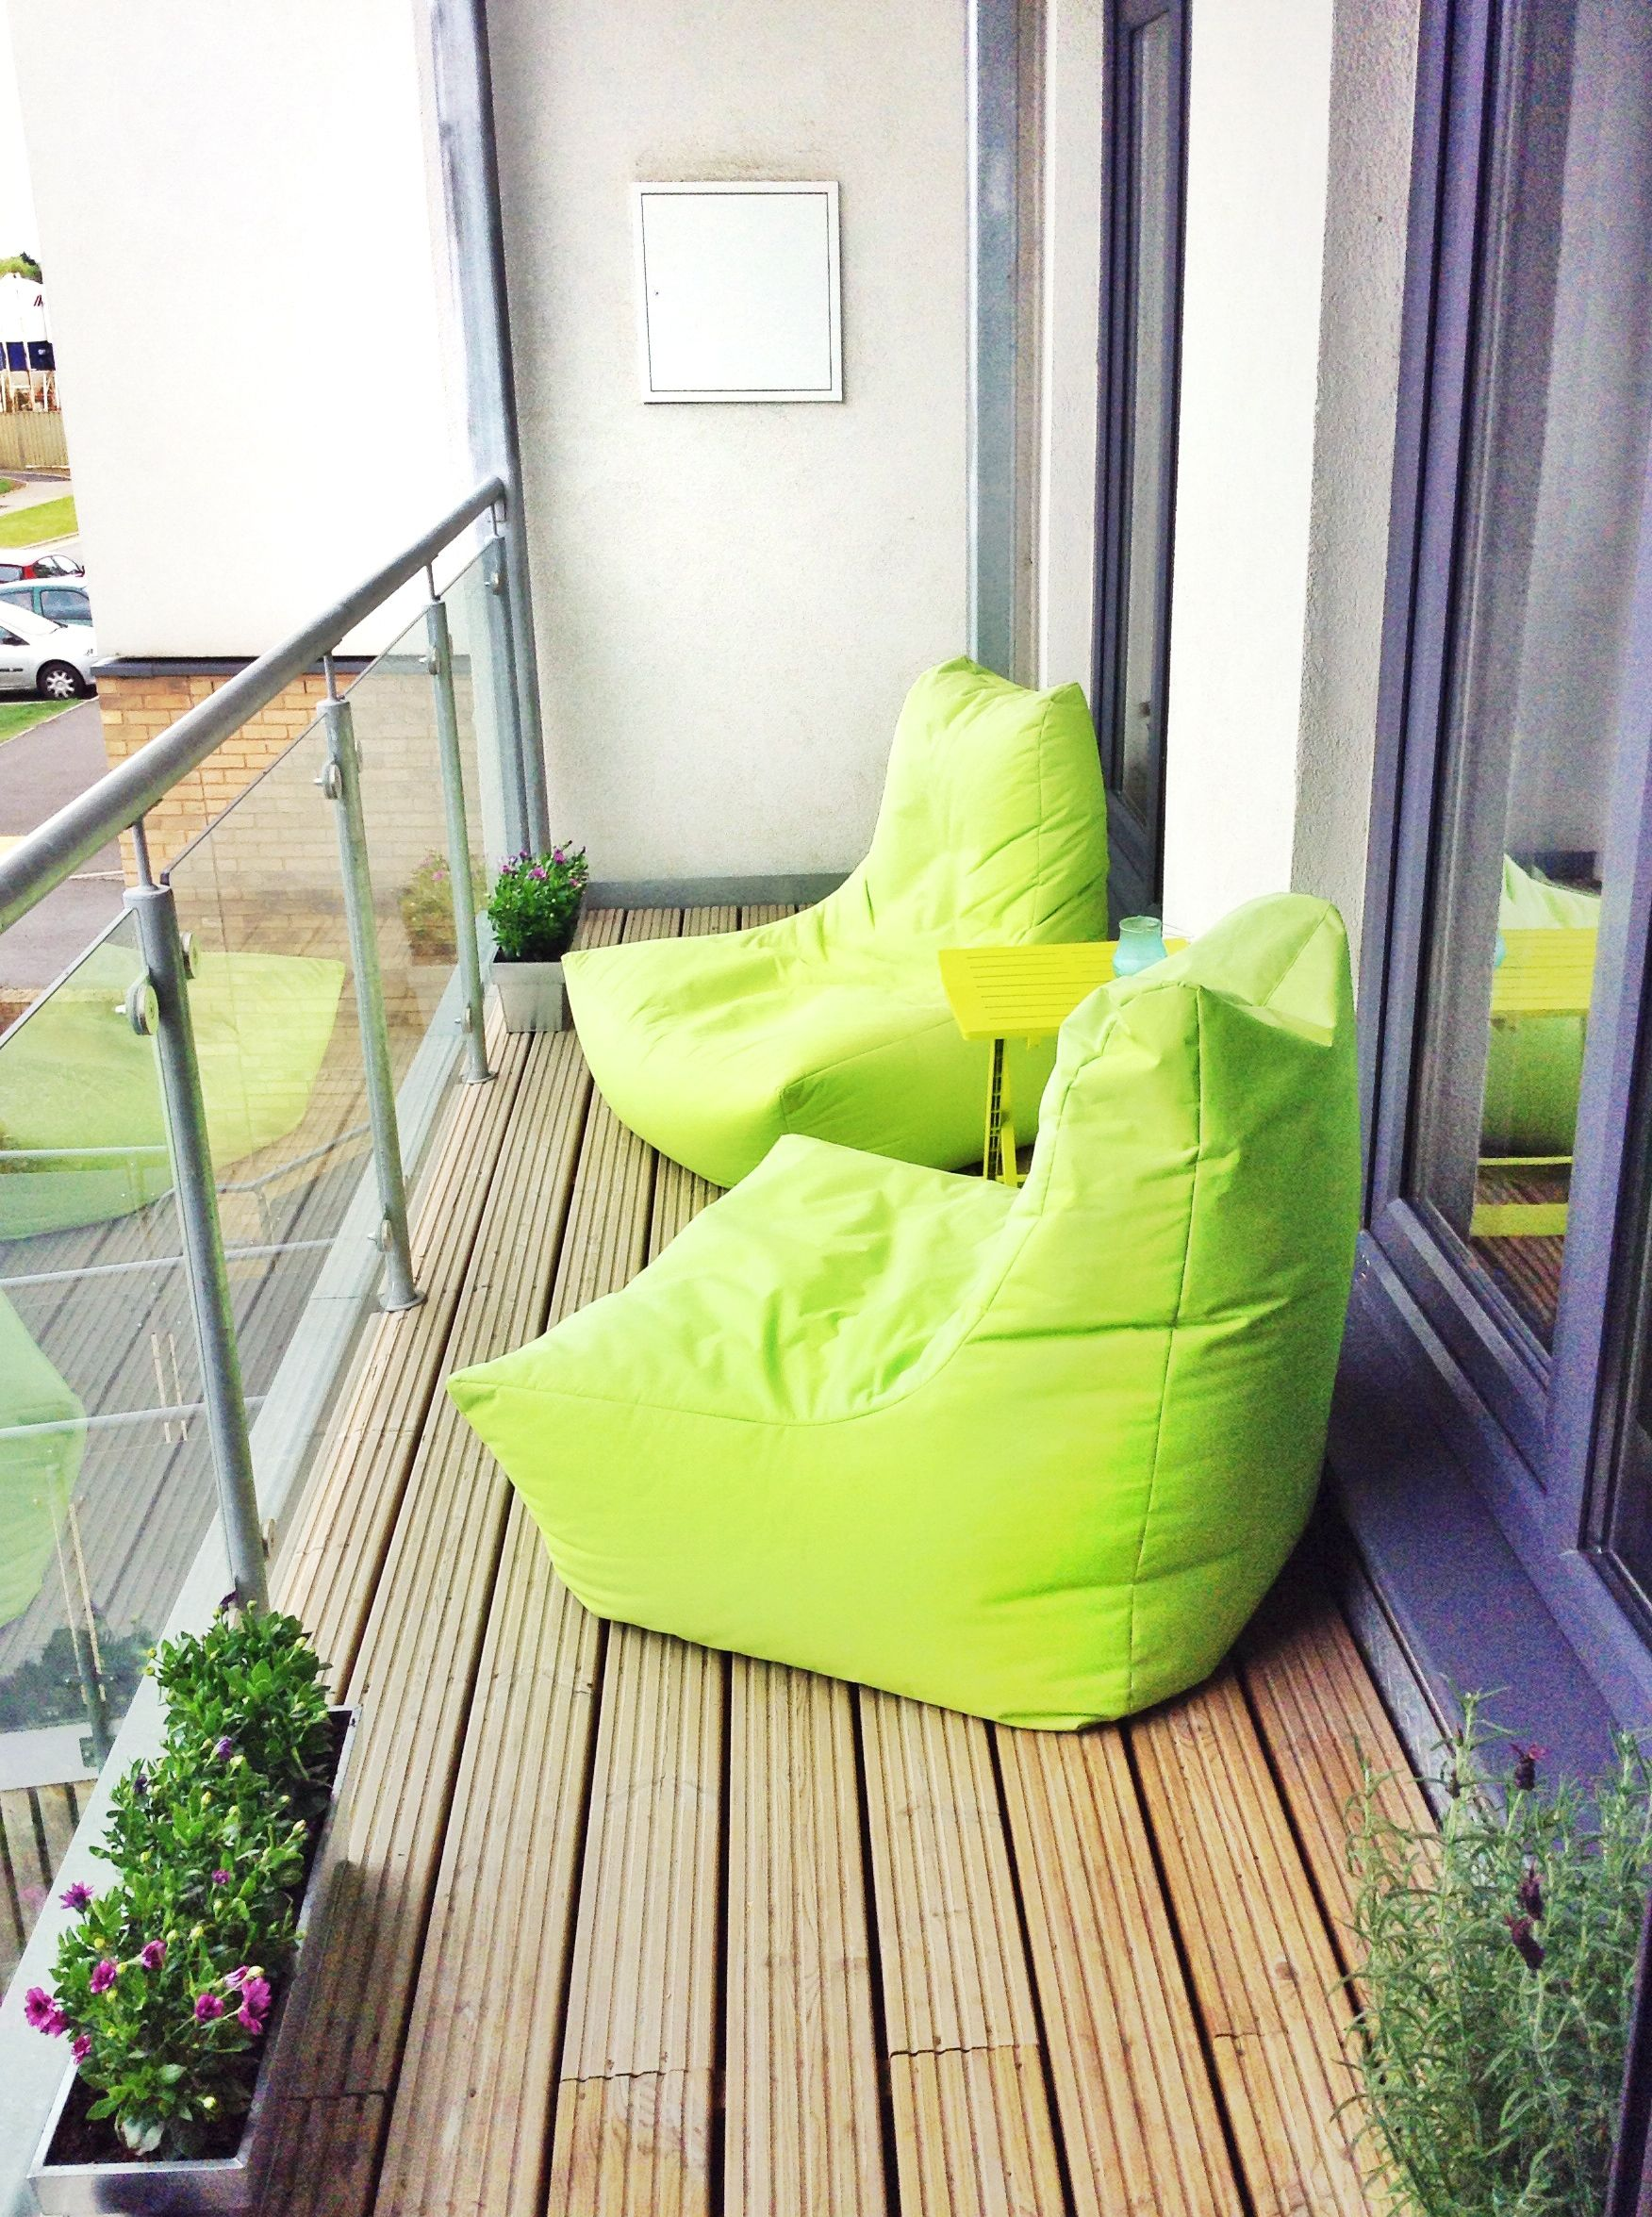 Mattresses why not hanging on the balcony garden compact seating - Balcony Gardening